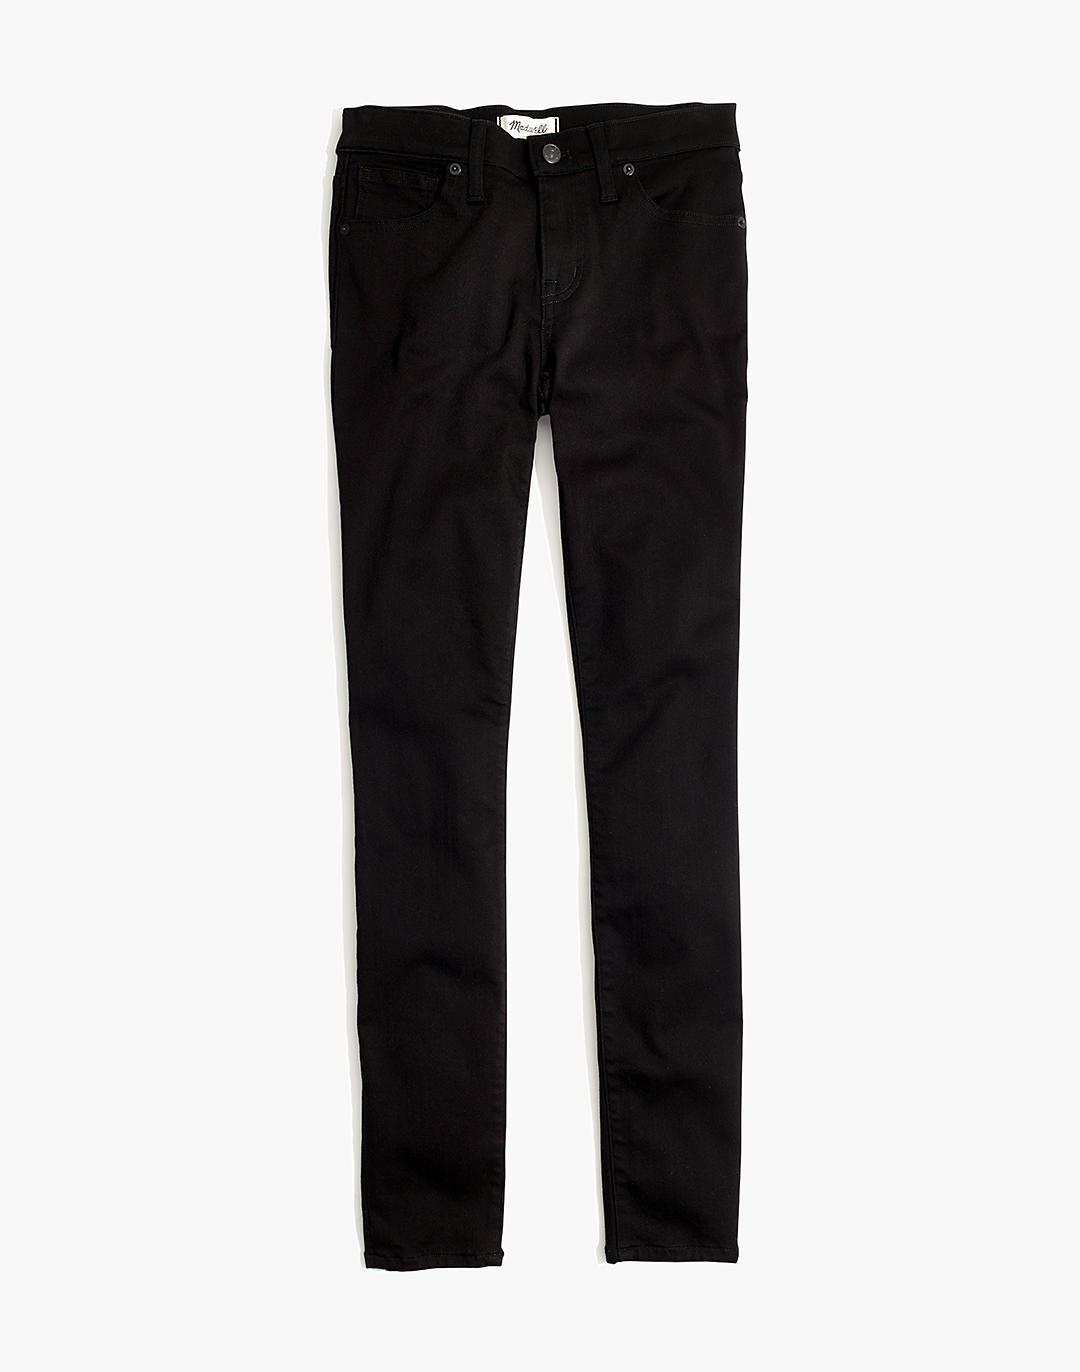 """8"""" Skinny Jeans in Carbondale Wash 4"""